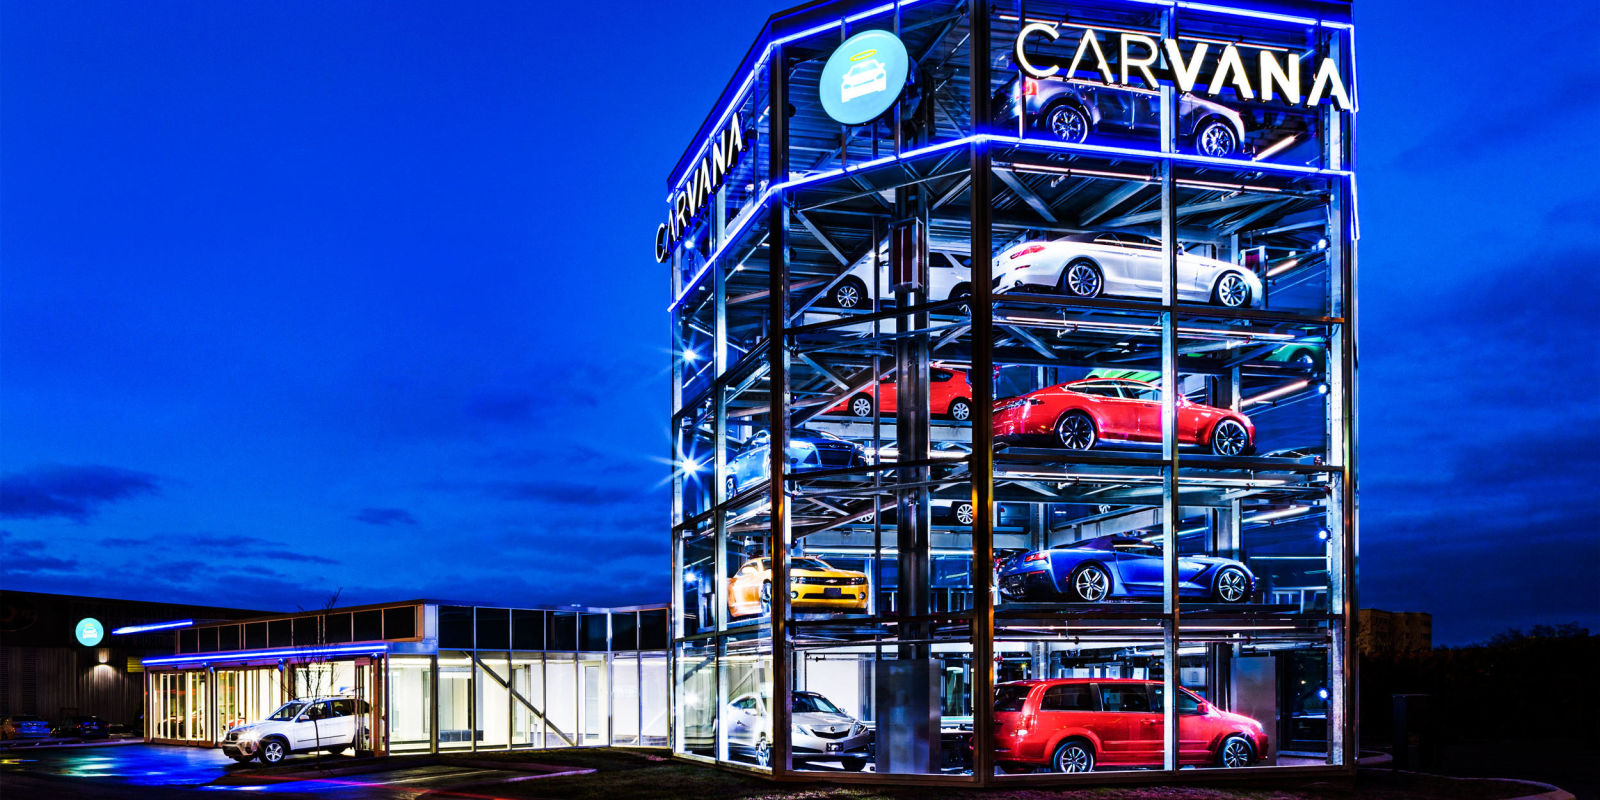 carvana_car_rentals_the_technews